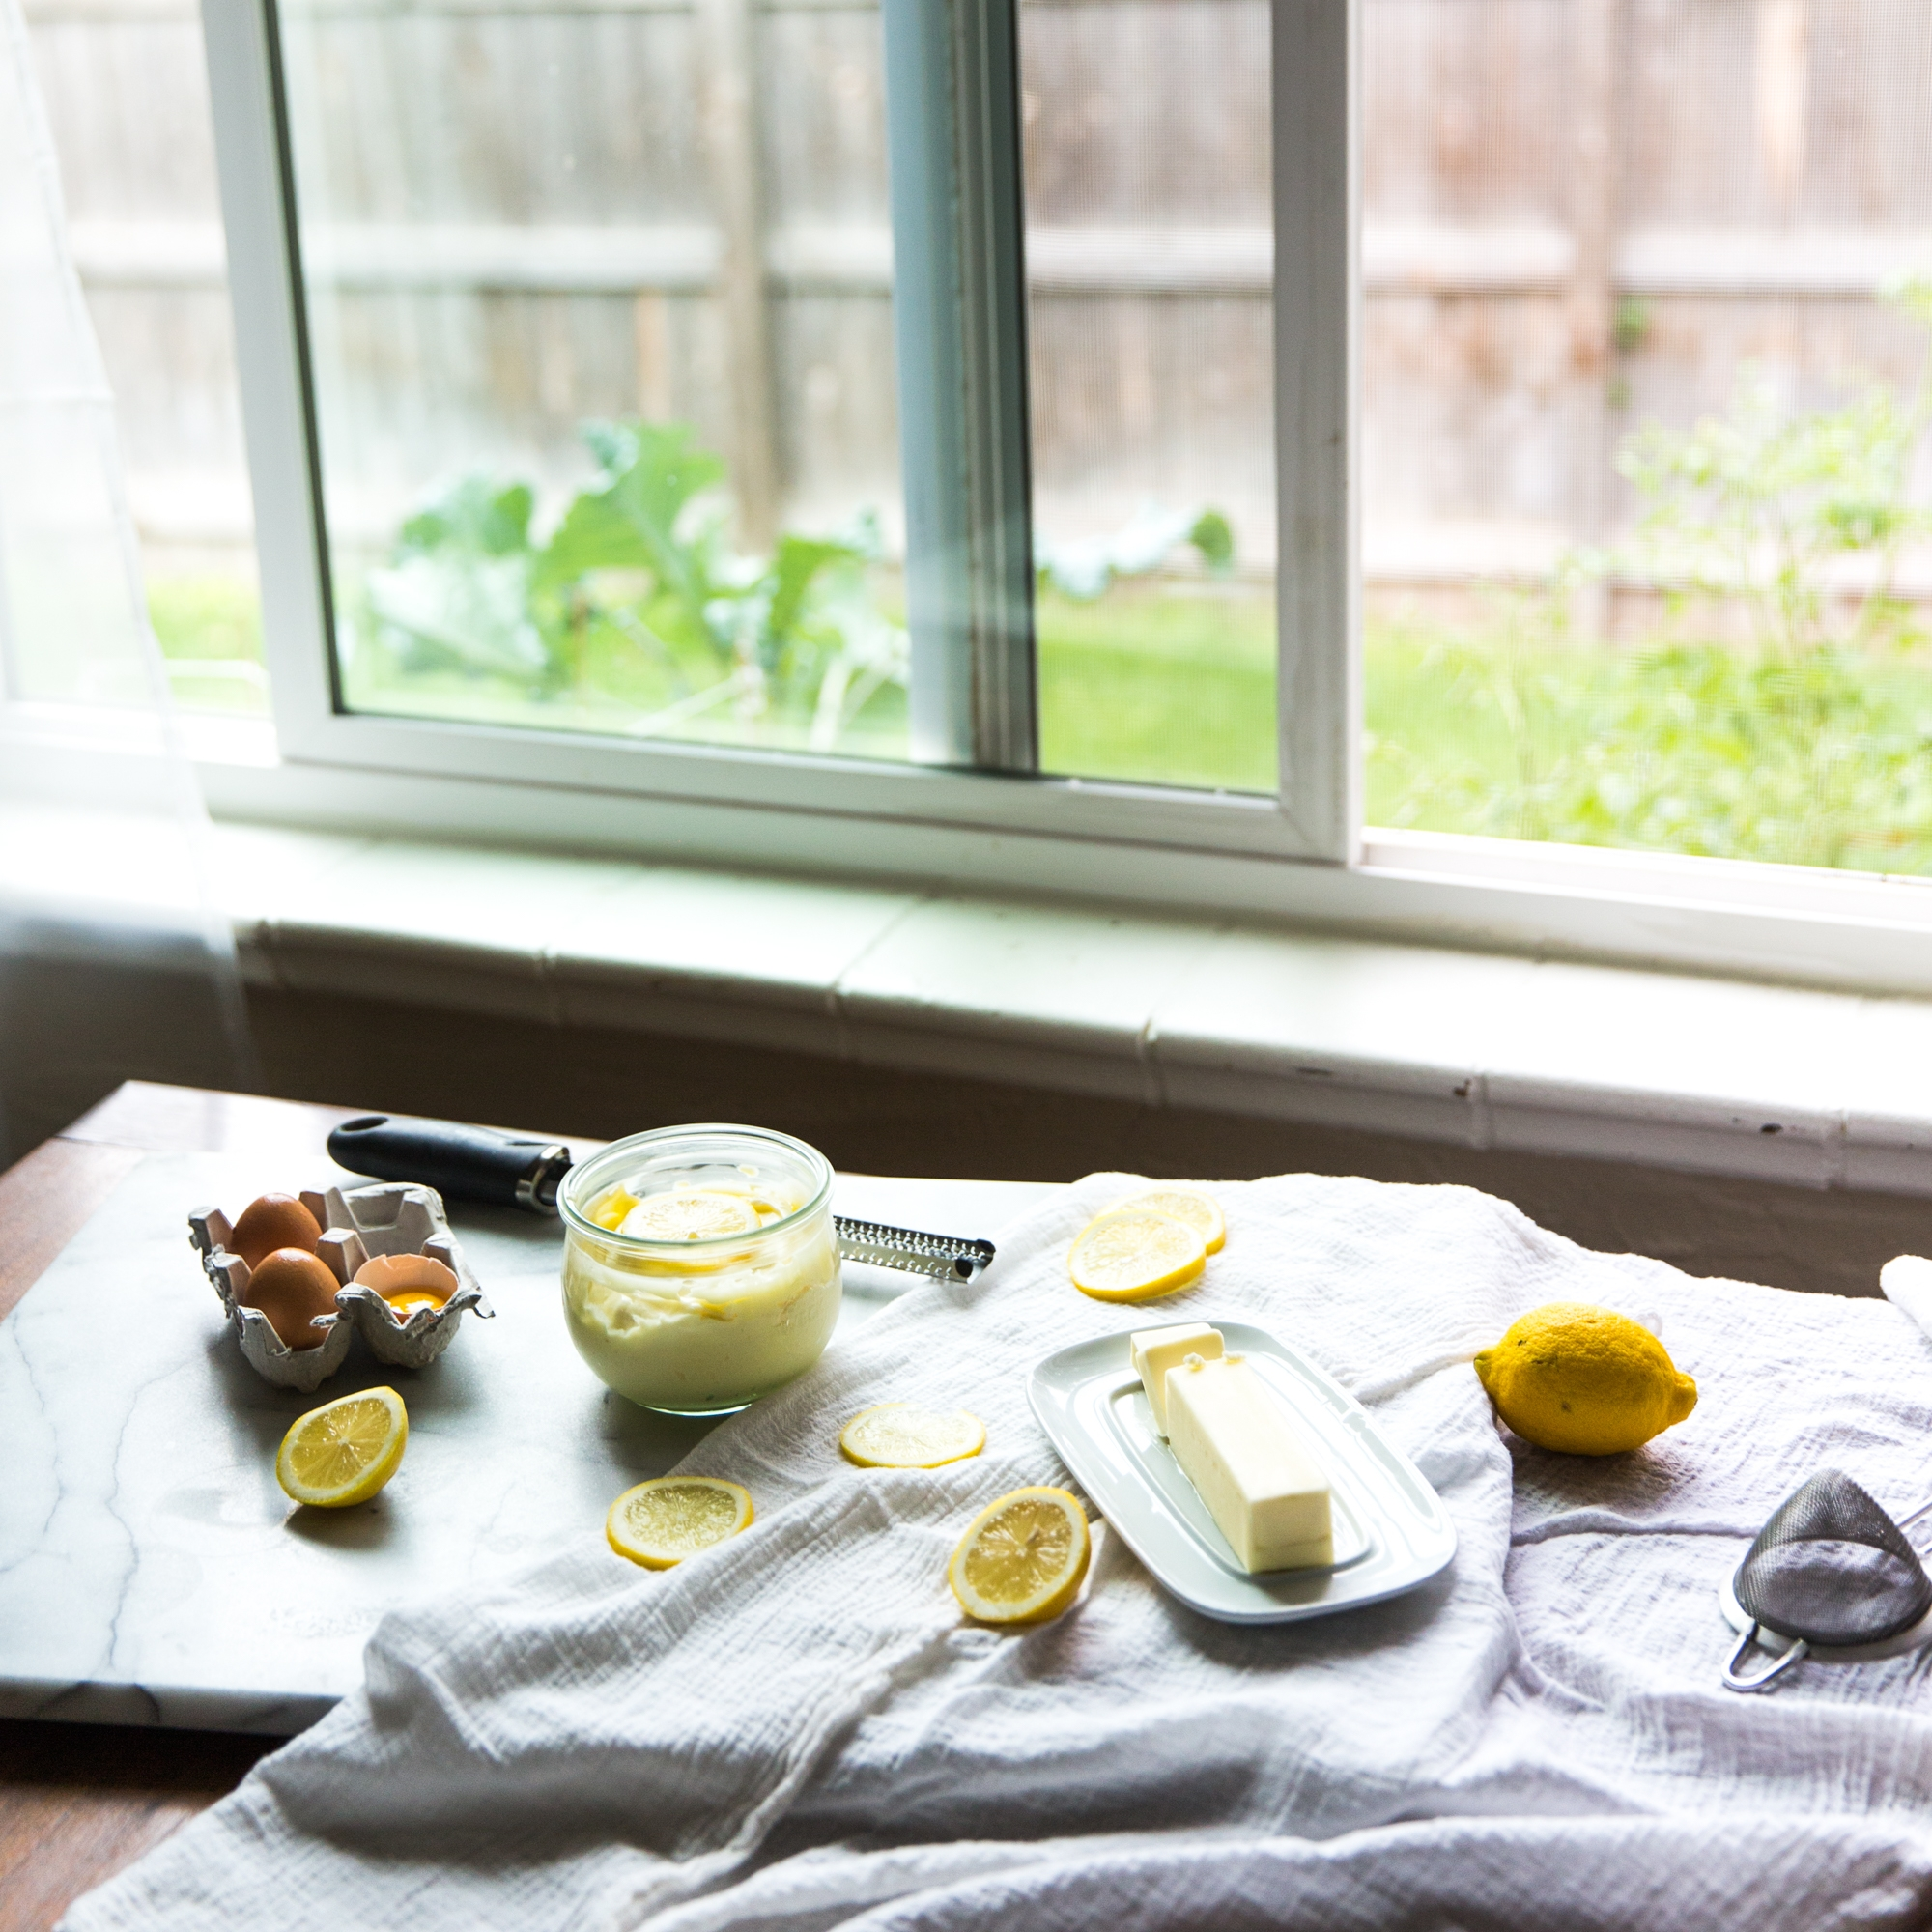 Setting Up Natural Light Food Photography